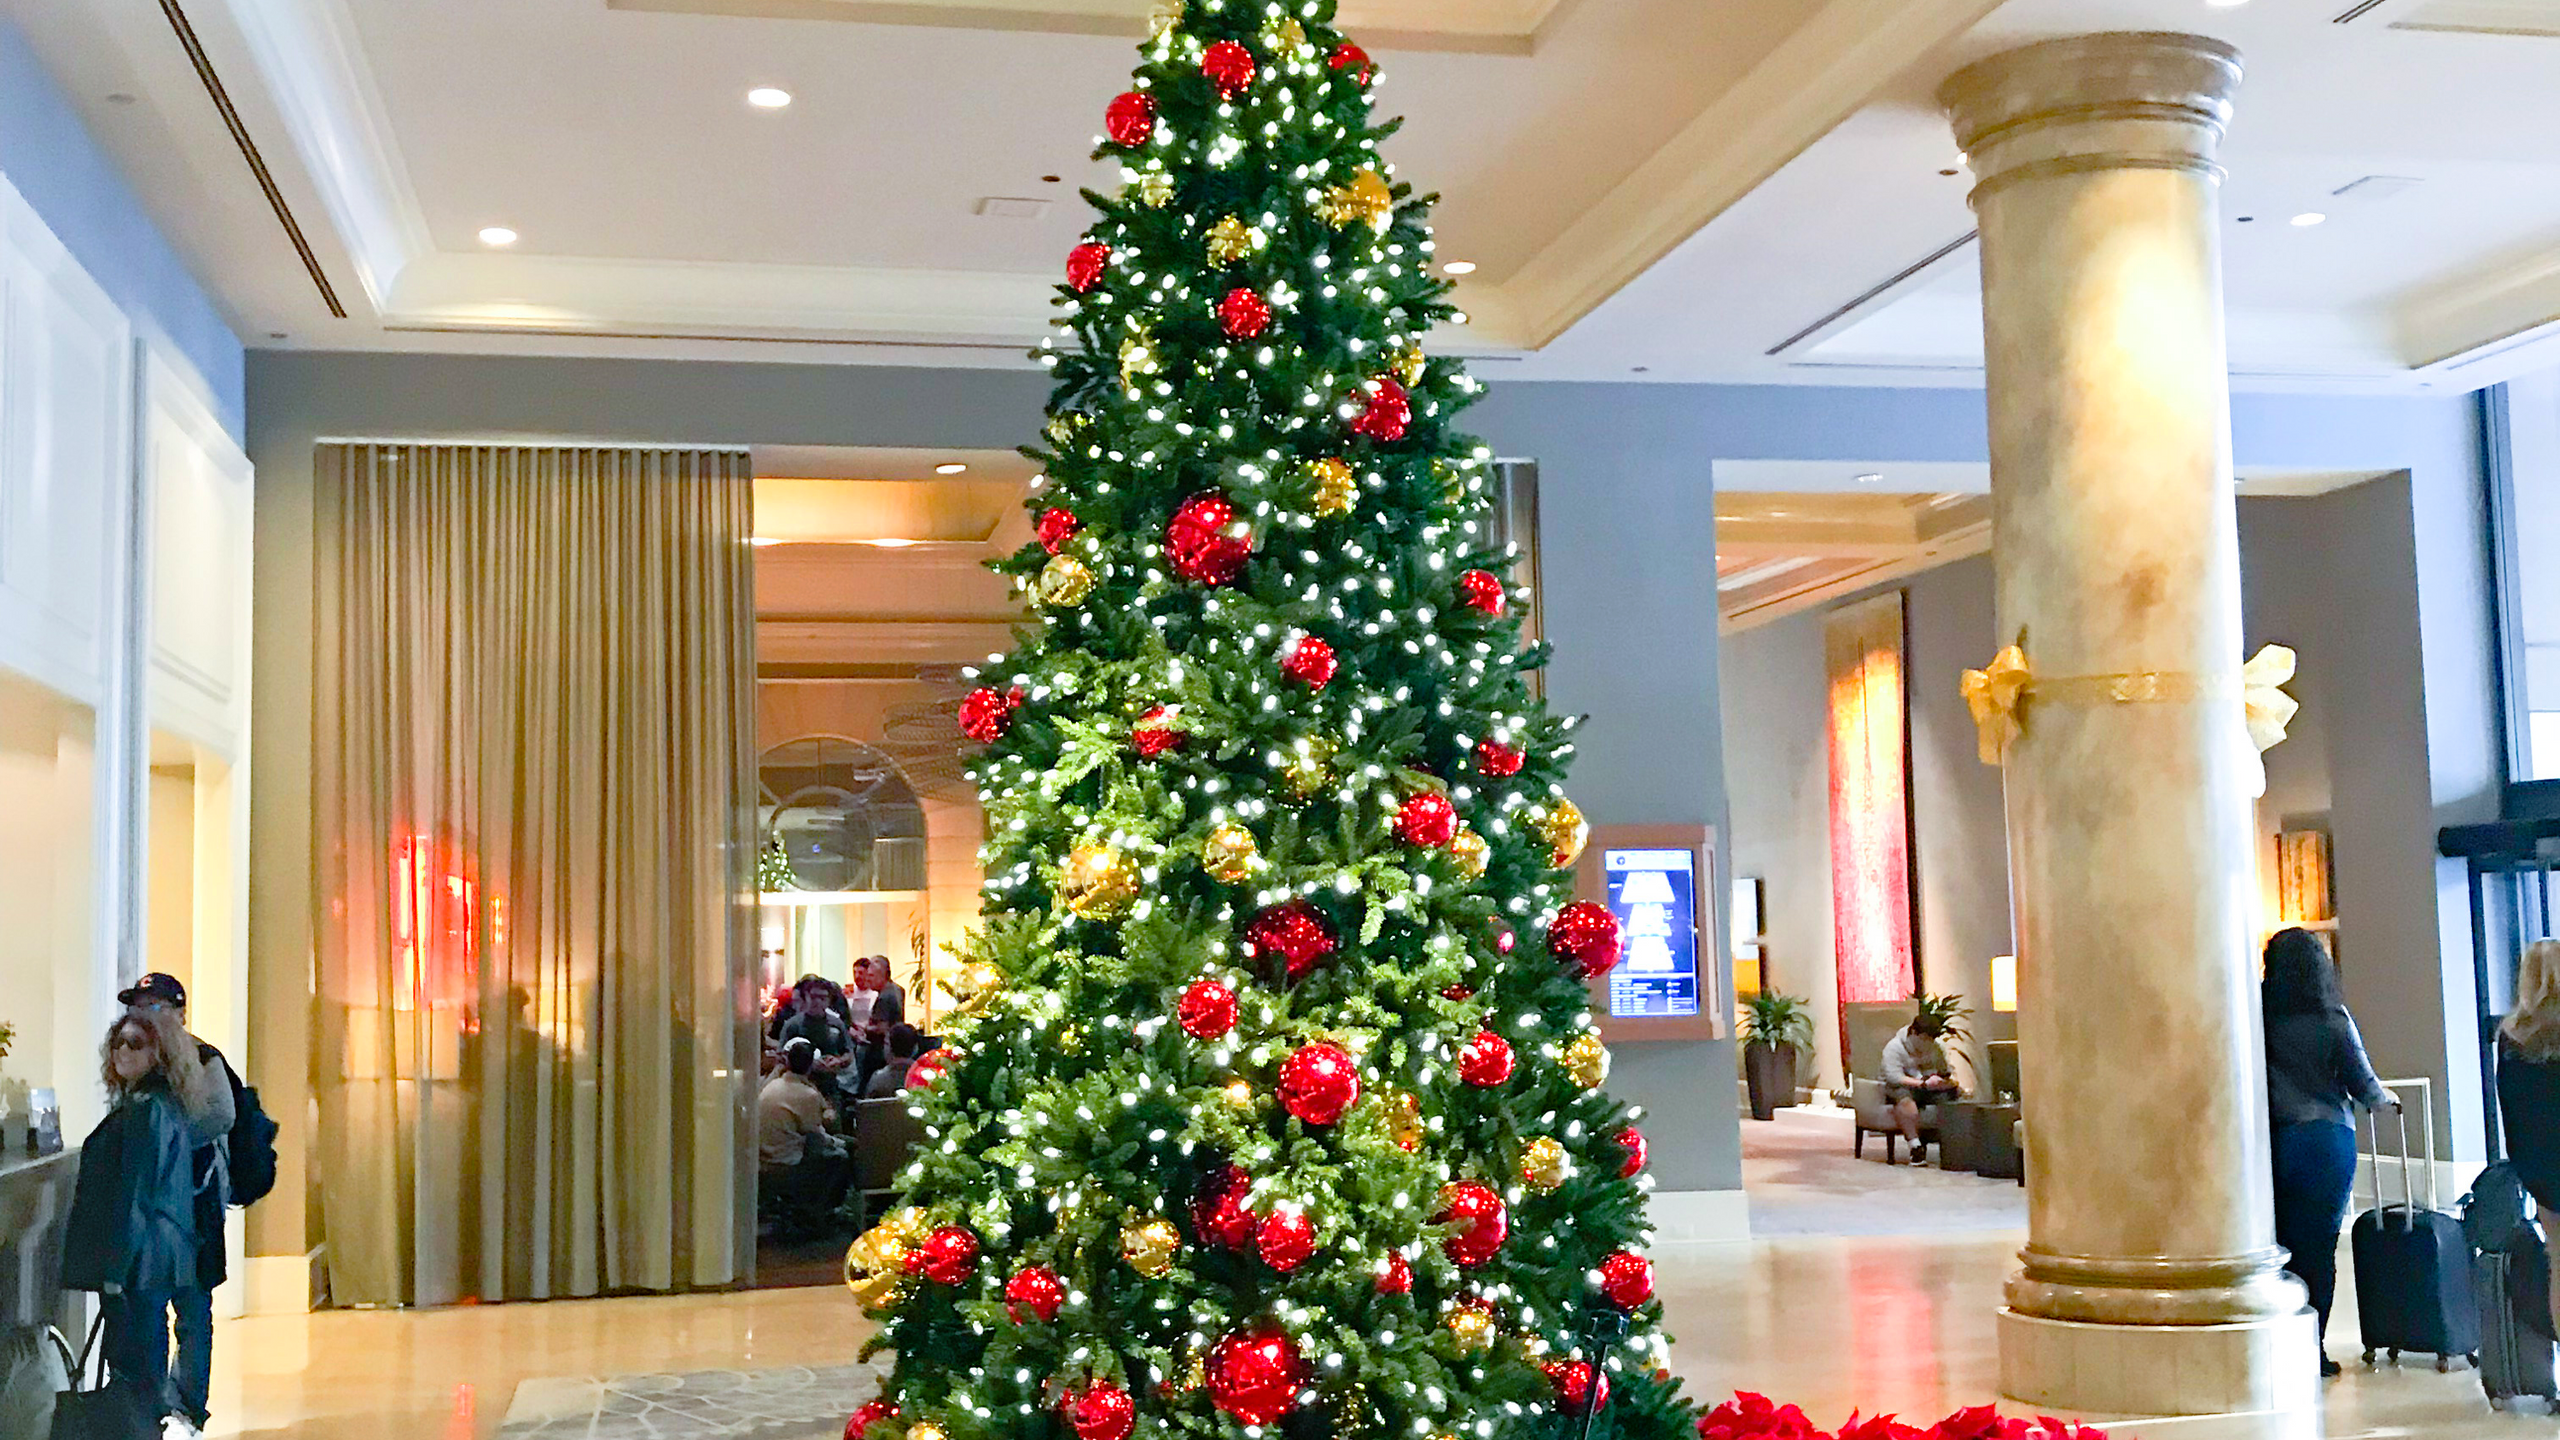 15 ft' Christmas tree designed by Franzie's Flower Design for the Fairmont Dallas hotel lobby.